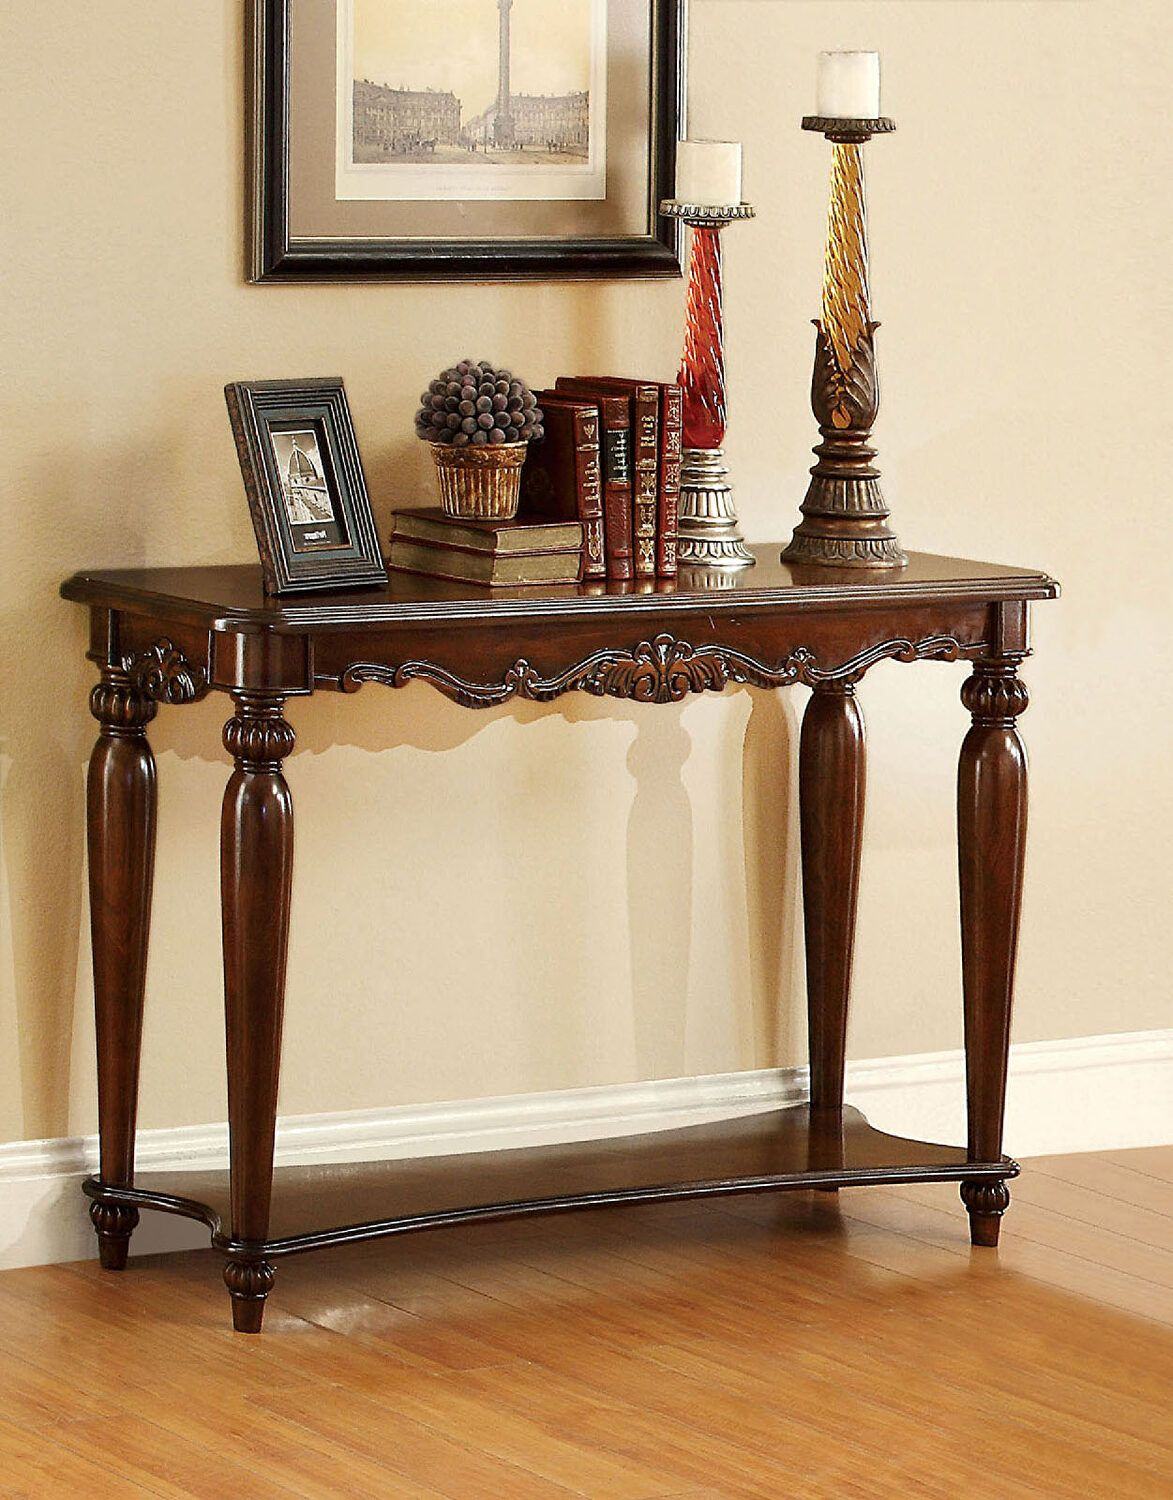 Cherry Wood Sofa Table Best Collections Of Sofas And Couches Sofacouchs Com Wood Sofa Table Classic Table Lamp Sofa Table